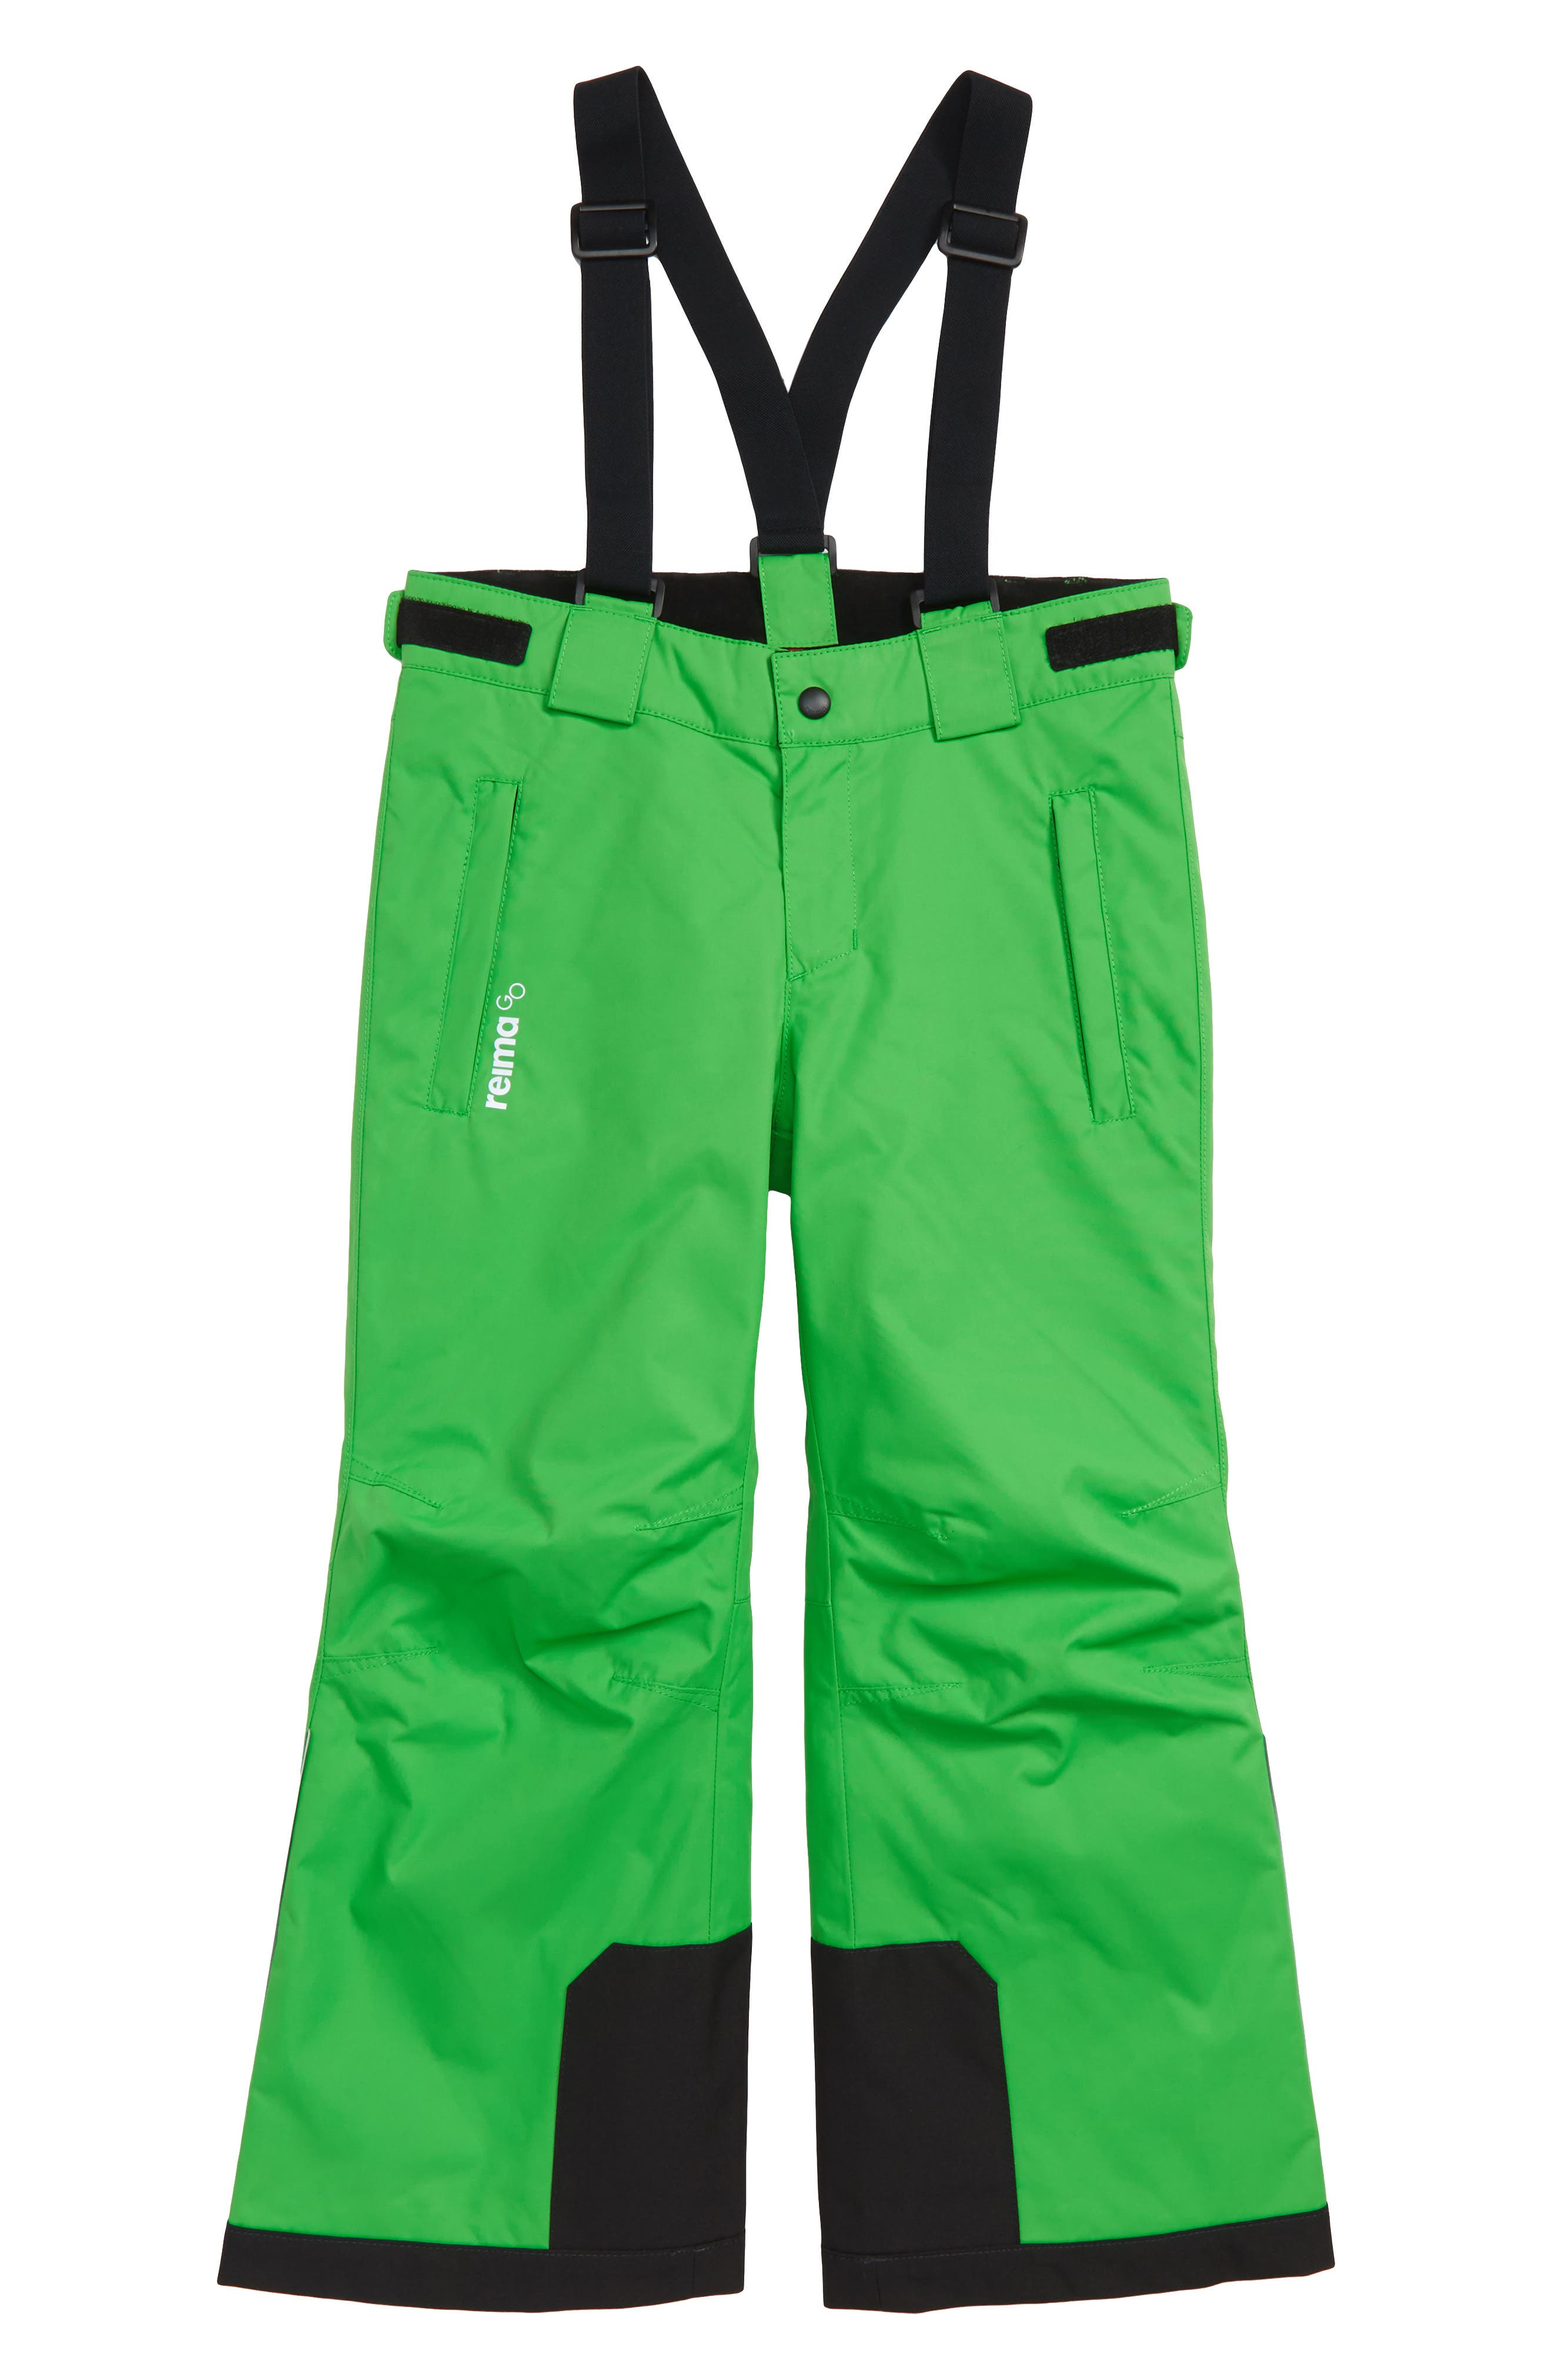 REIMA Reimatec<sup>®</sup> Takeoff Waterproof Insulated Snow Pants, Main, color, 300